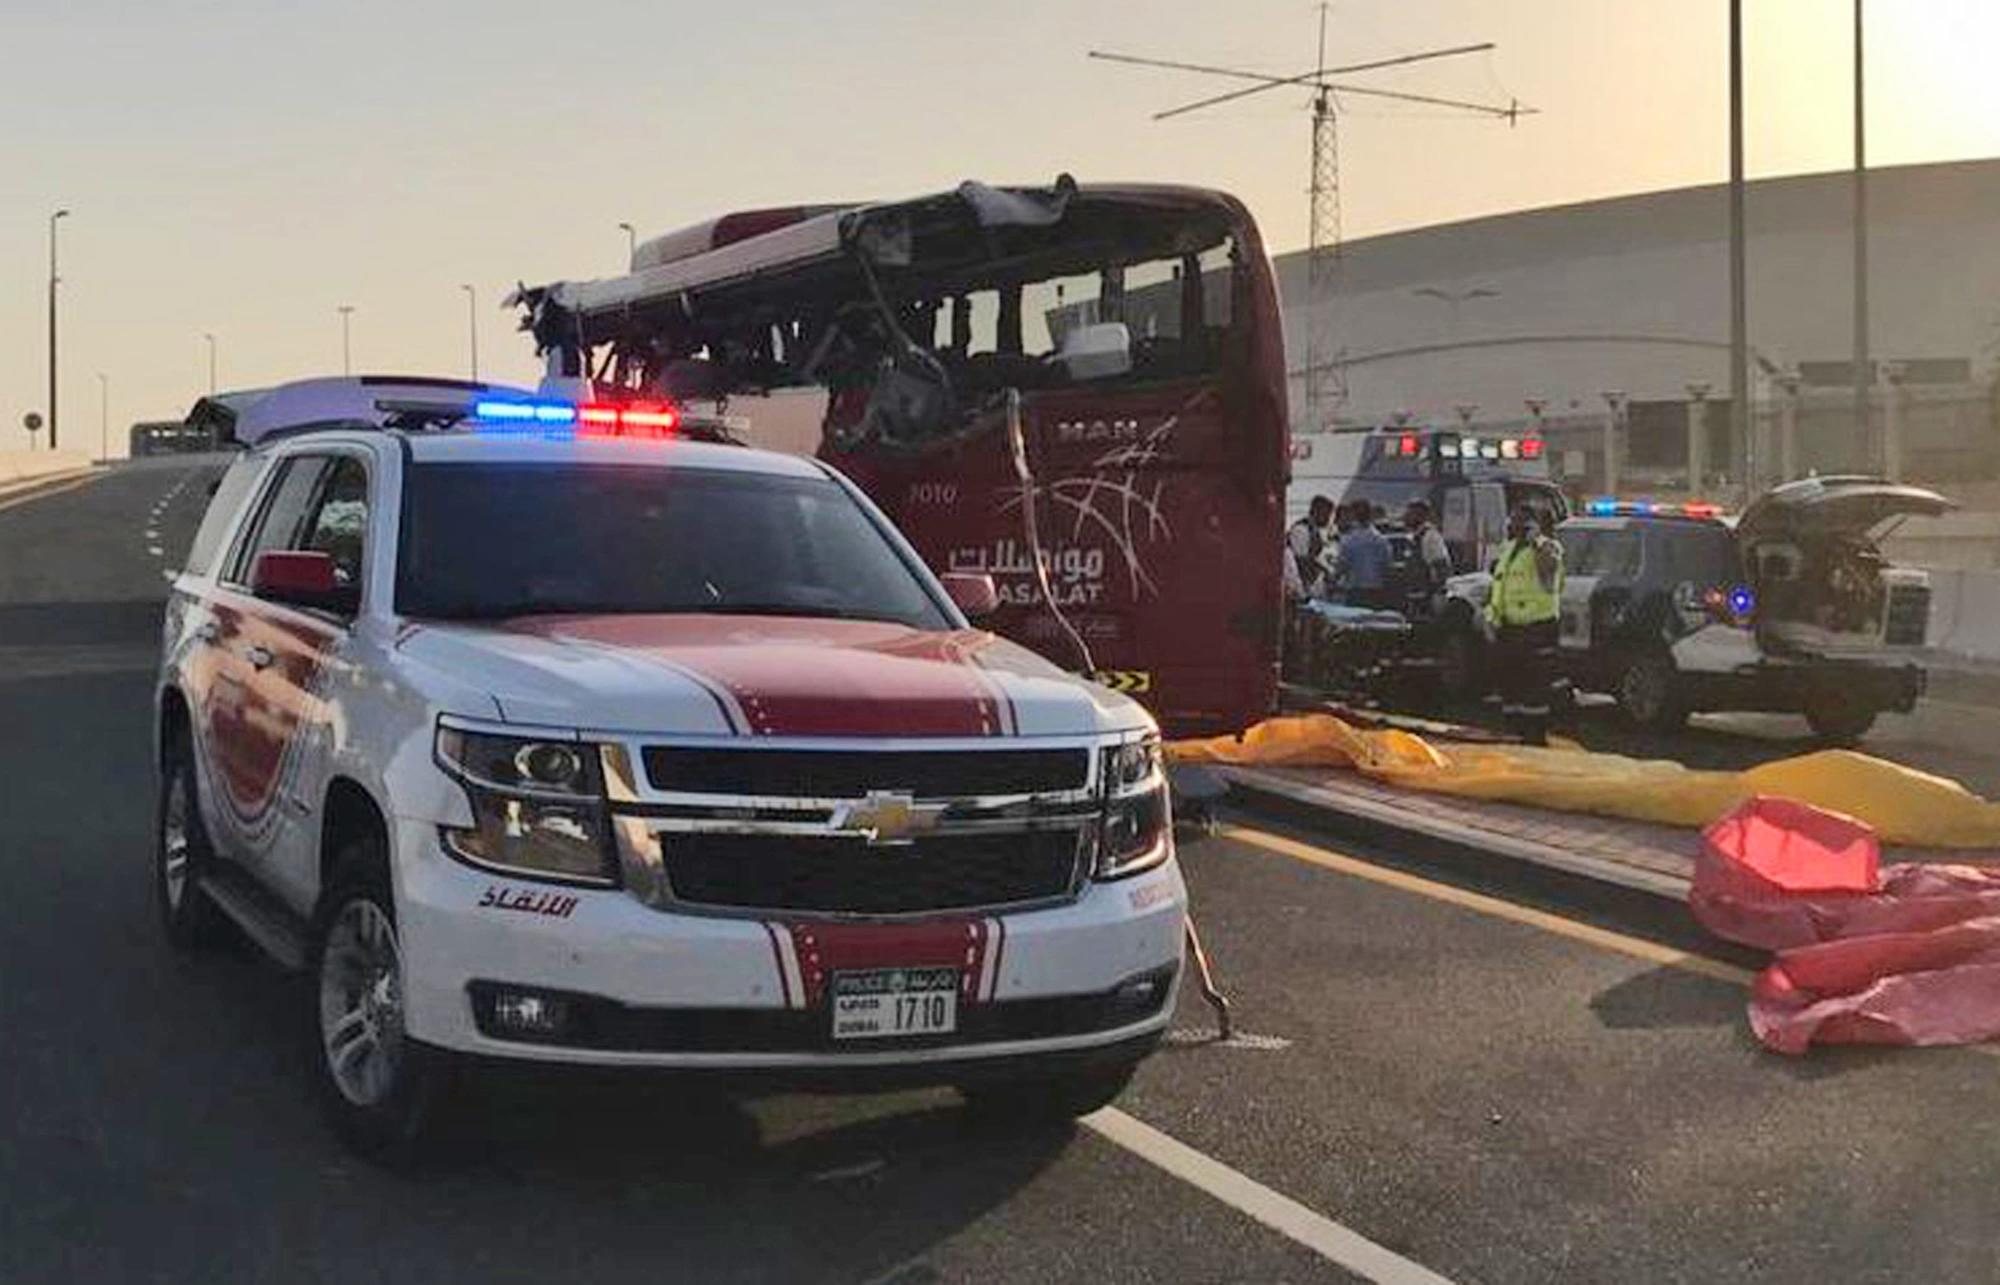 Sentence reduced for driver in fatal Dubai bus crash case